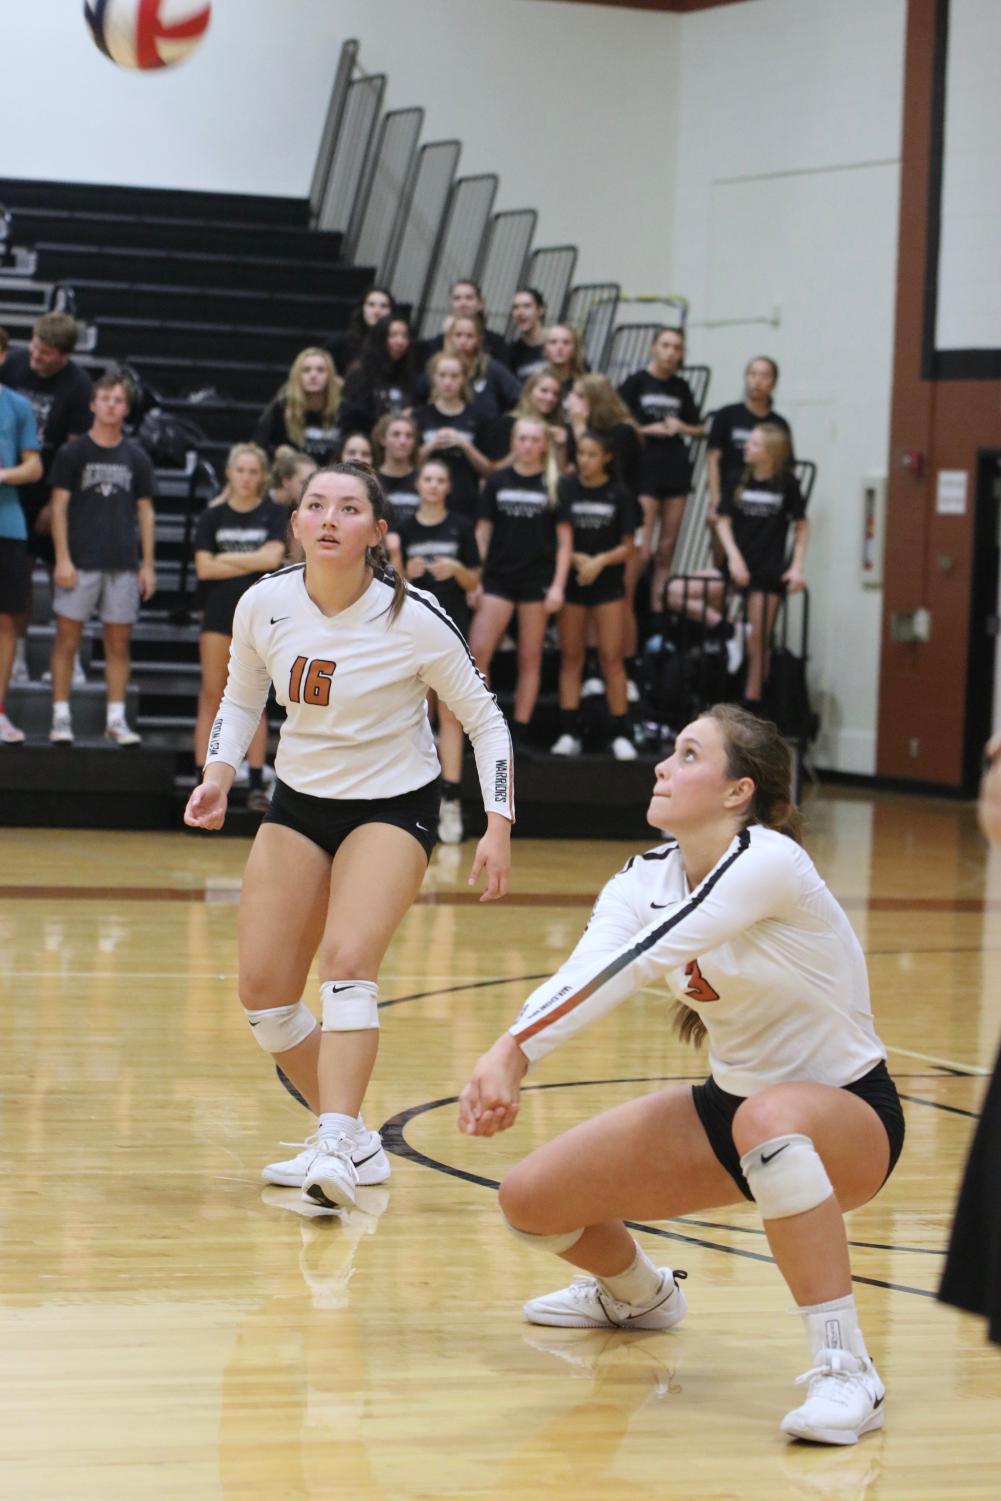 Abby+Gregorczyk+%2721+gets+in+position+to+hit+the+ball%2C+while+Abi+Rucker+%2720+watches+from+behind.+Gregorczyk%27s+bump+scored+a+point.+